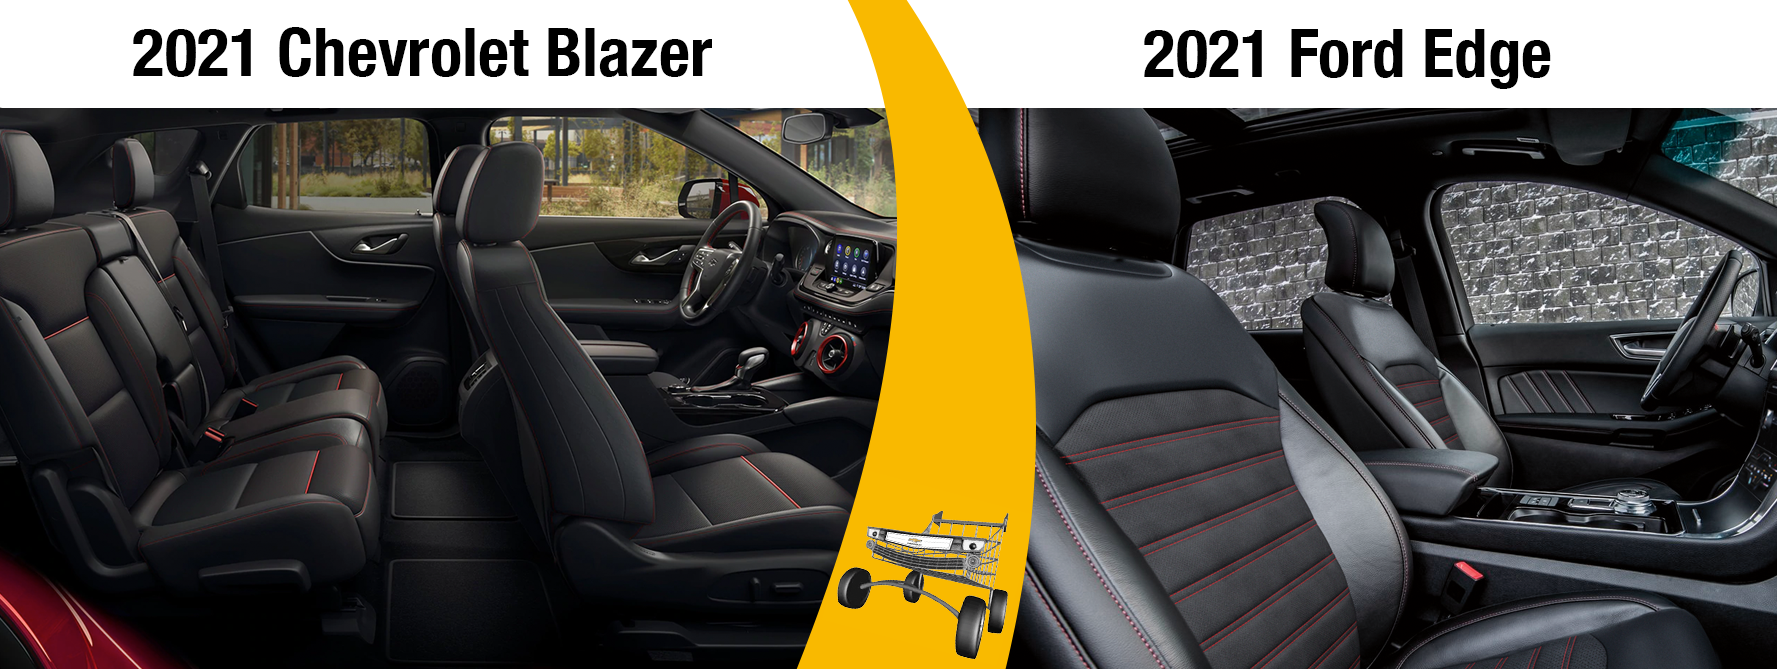 2021 Chevy Traverse Technology and Interior